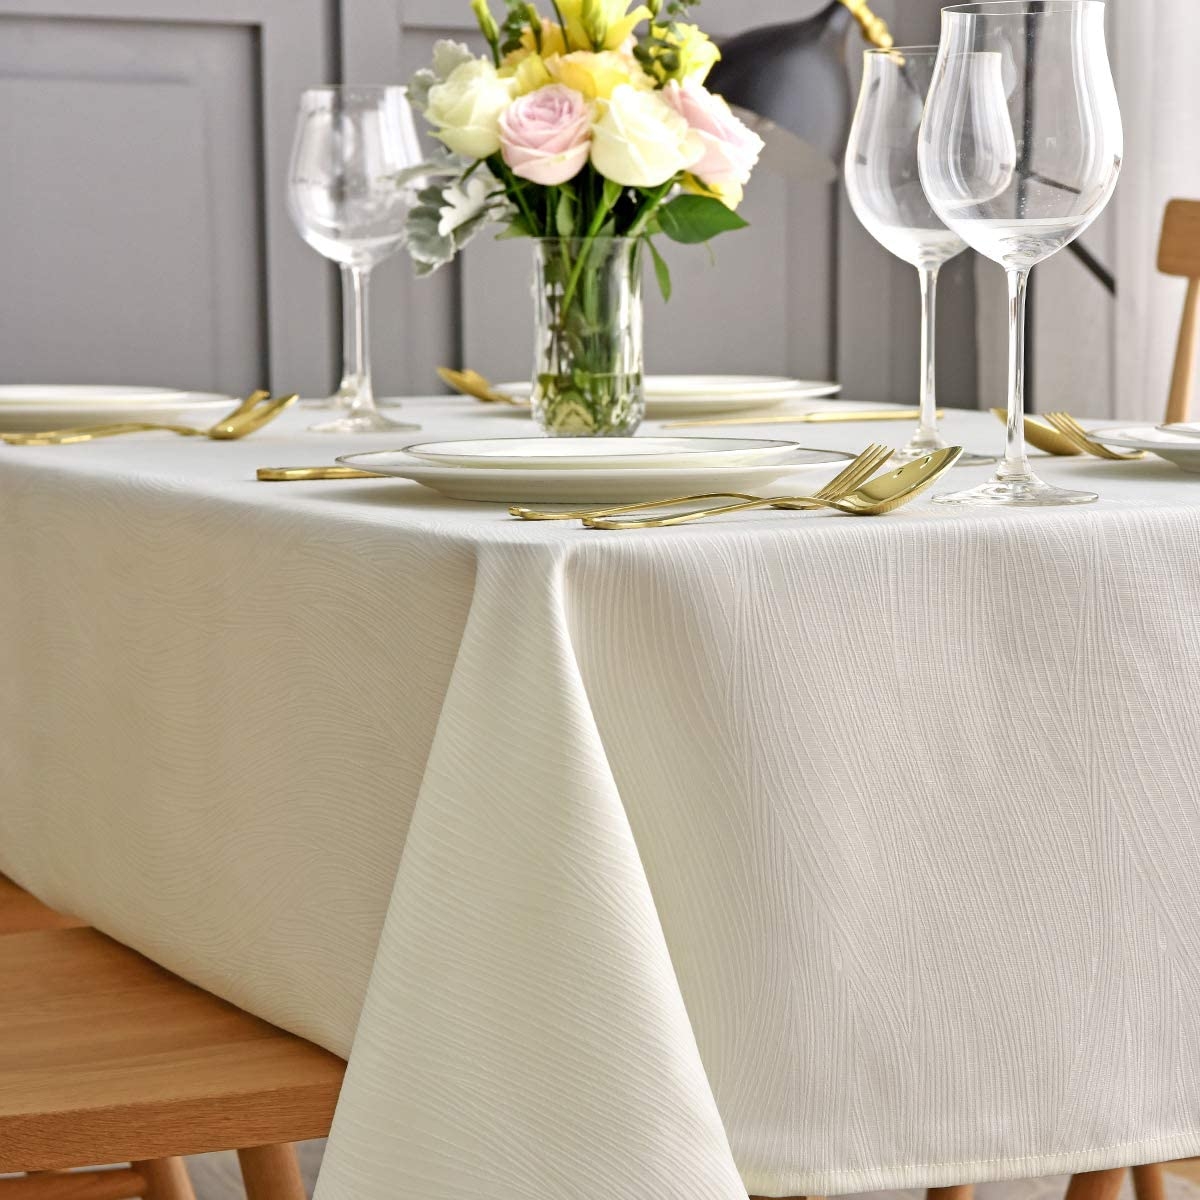 maxmill Jacquard Tablecloth Swirl Design Water Resistance Antiwrinkle Oil Proof Heavy Weight Soft Table Cloth for Buffet Banquet Parties Event Holiday Dinner Rectangle 60 x 84 Inch Ivory